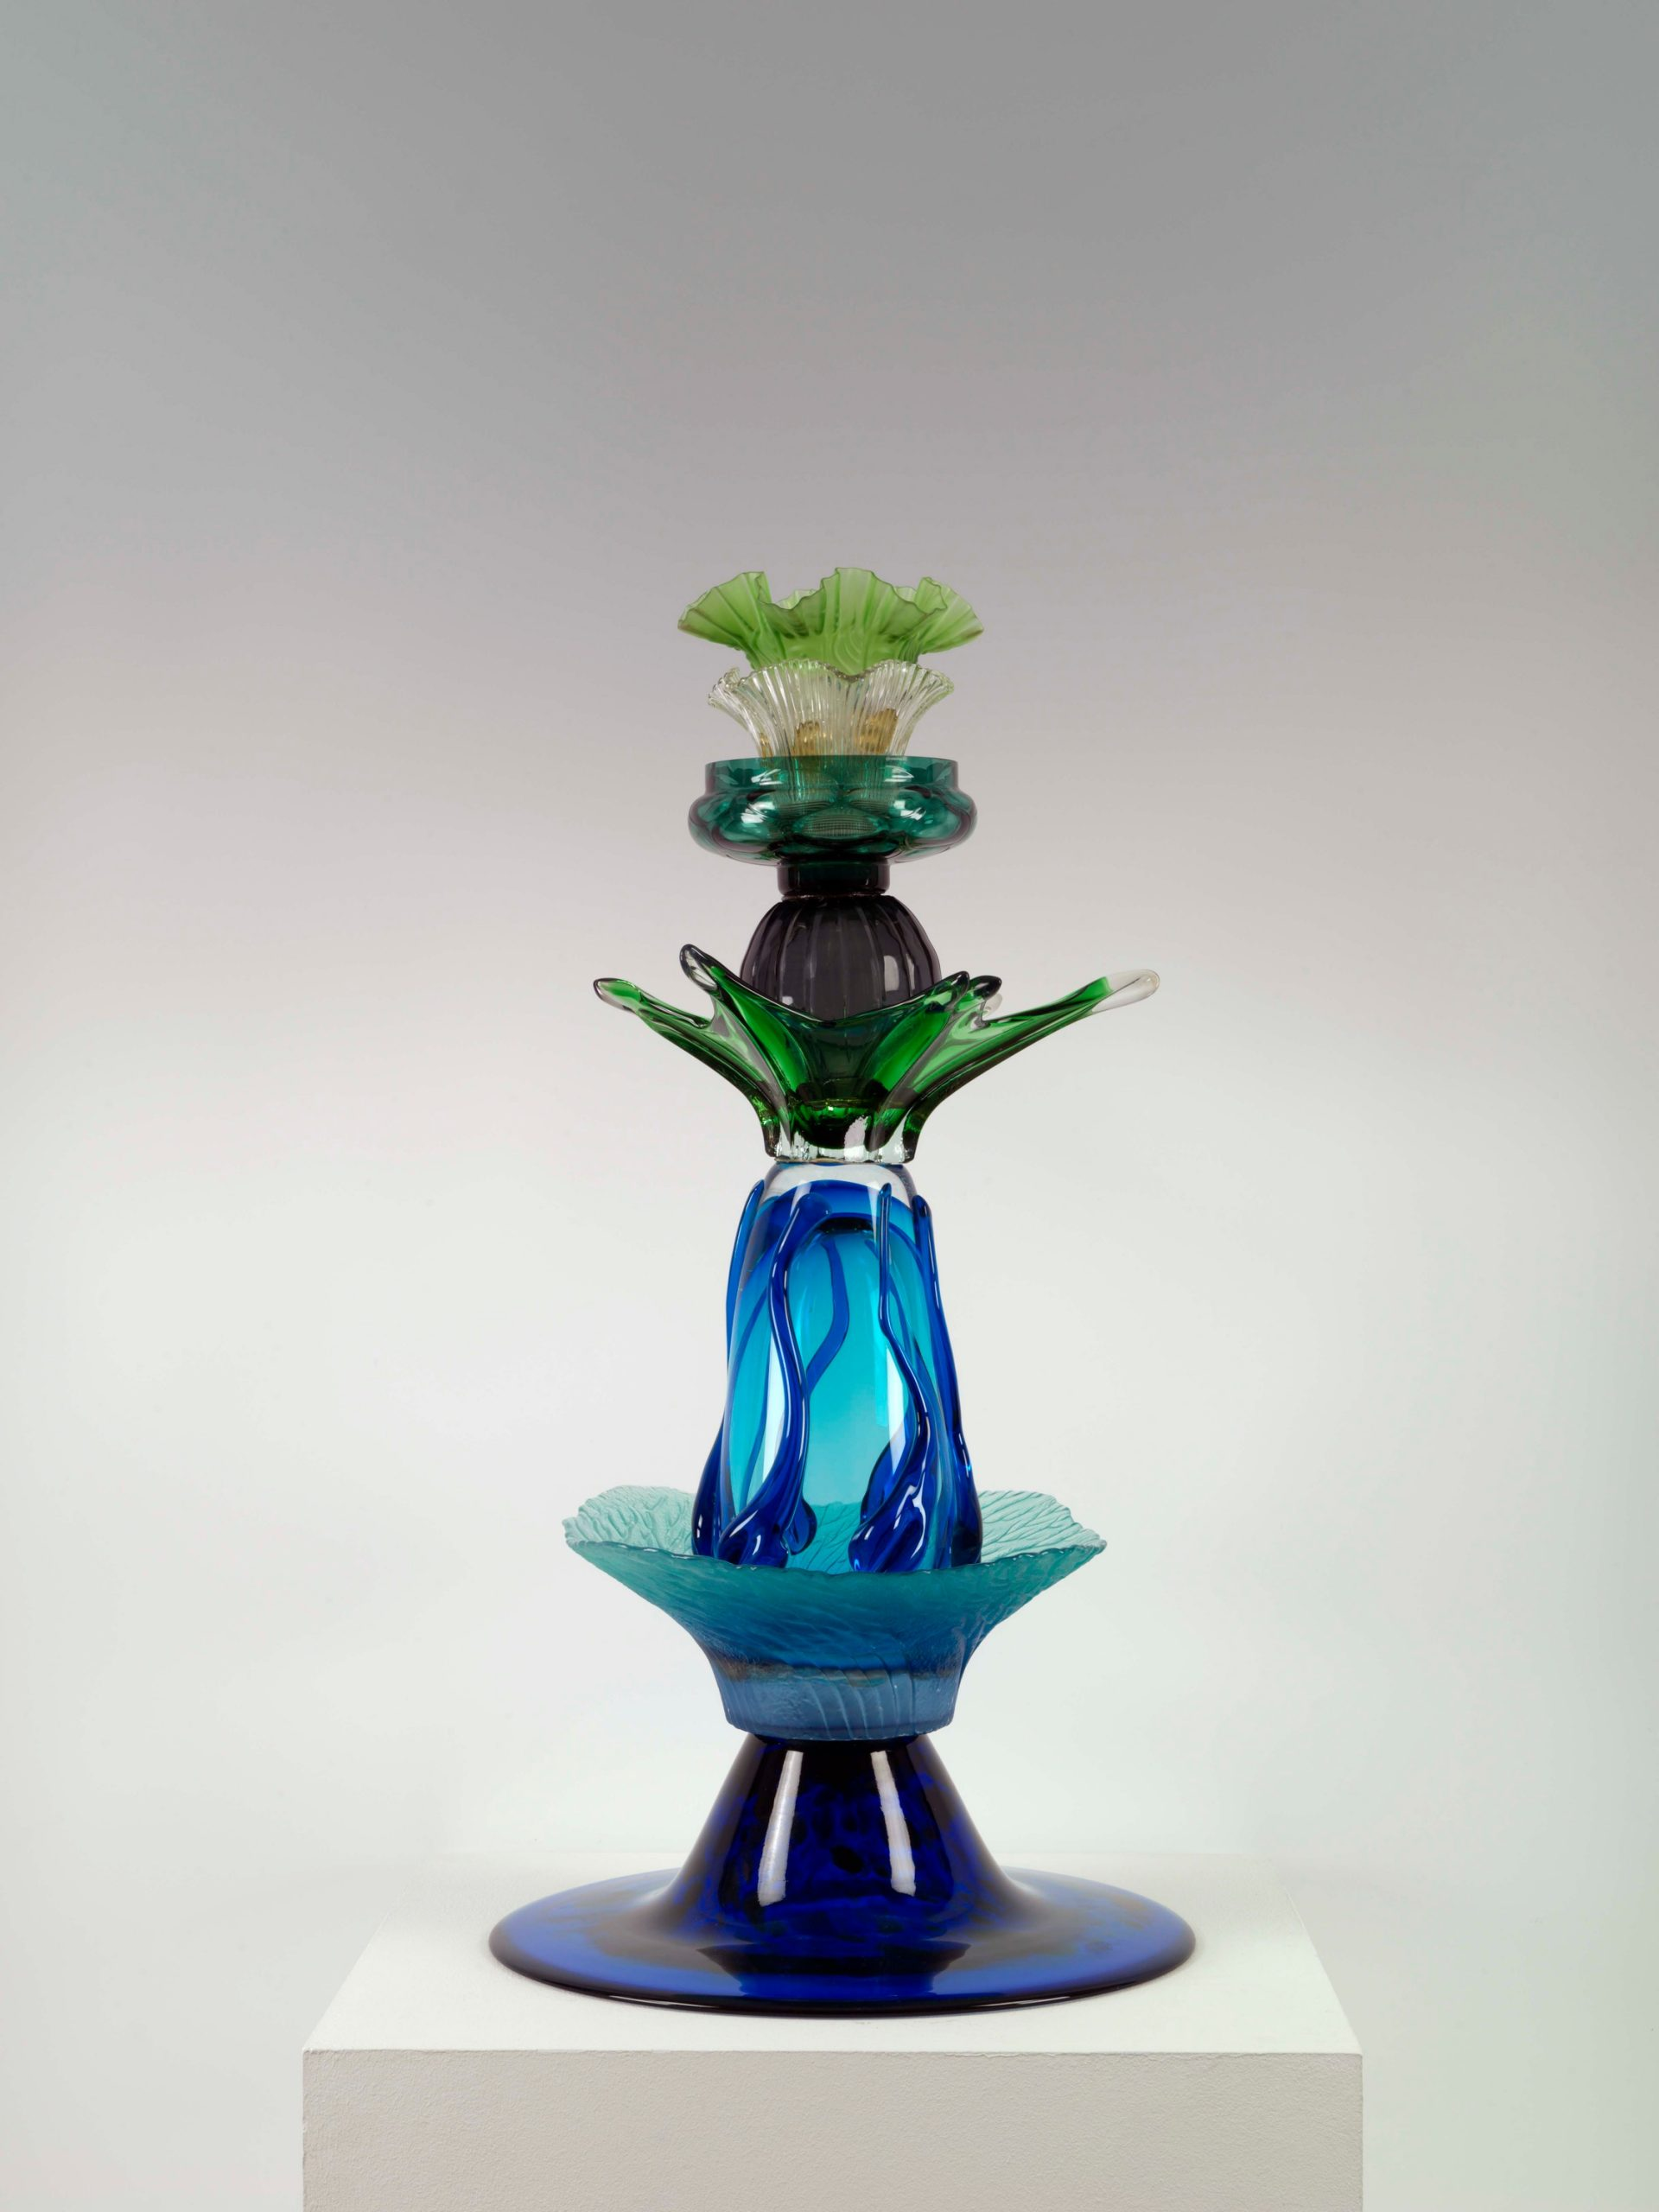 Untitled, 2009, glass, 71 x 36 x 36 cm